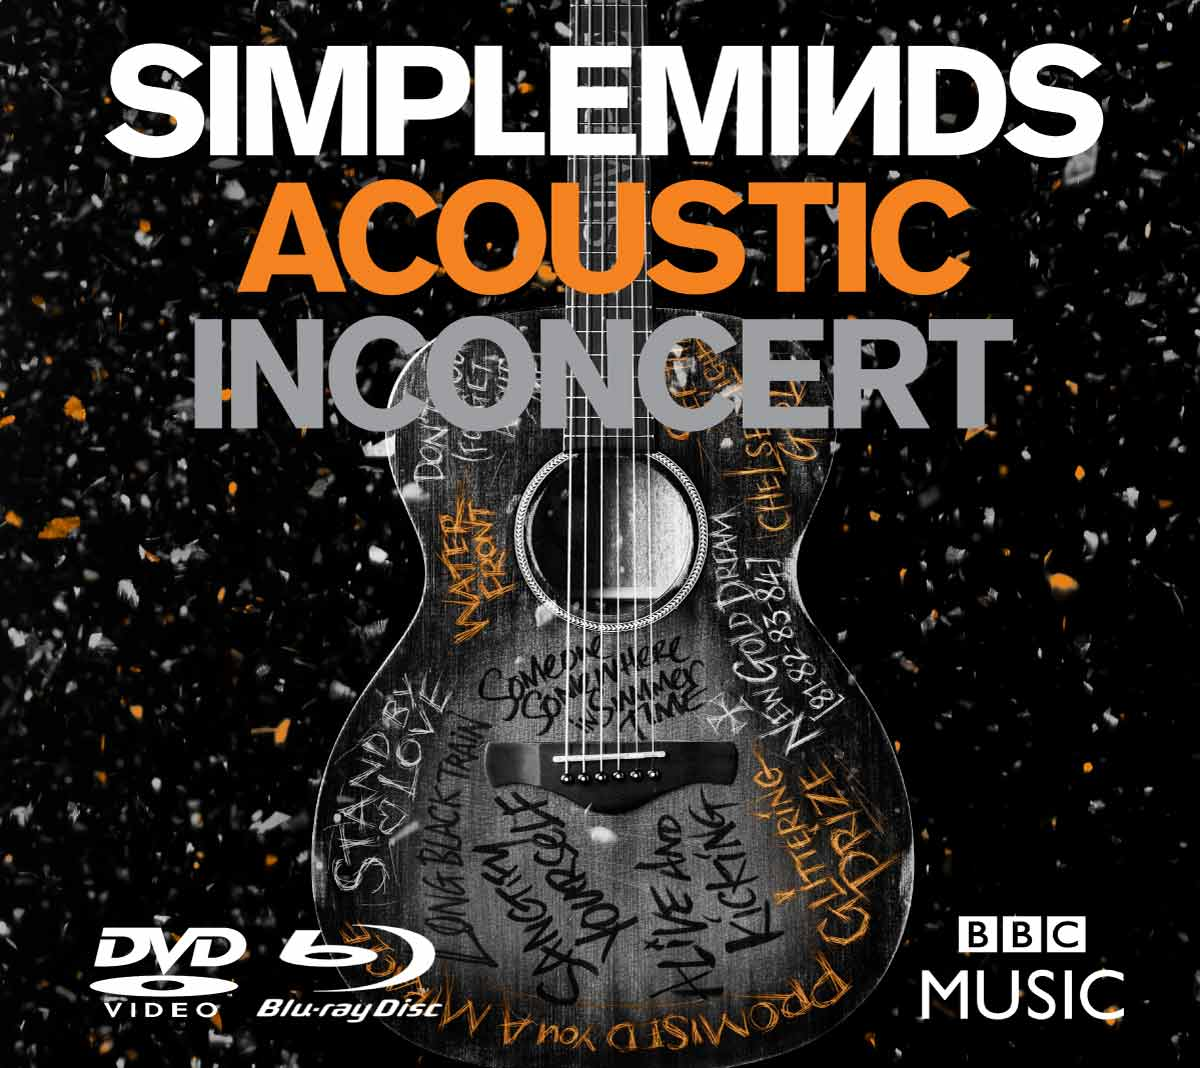 Musique Video Video Dvd Blu Ray Archives Simpleminds Com